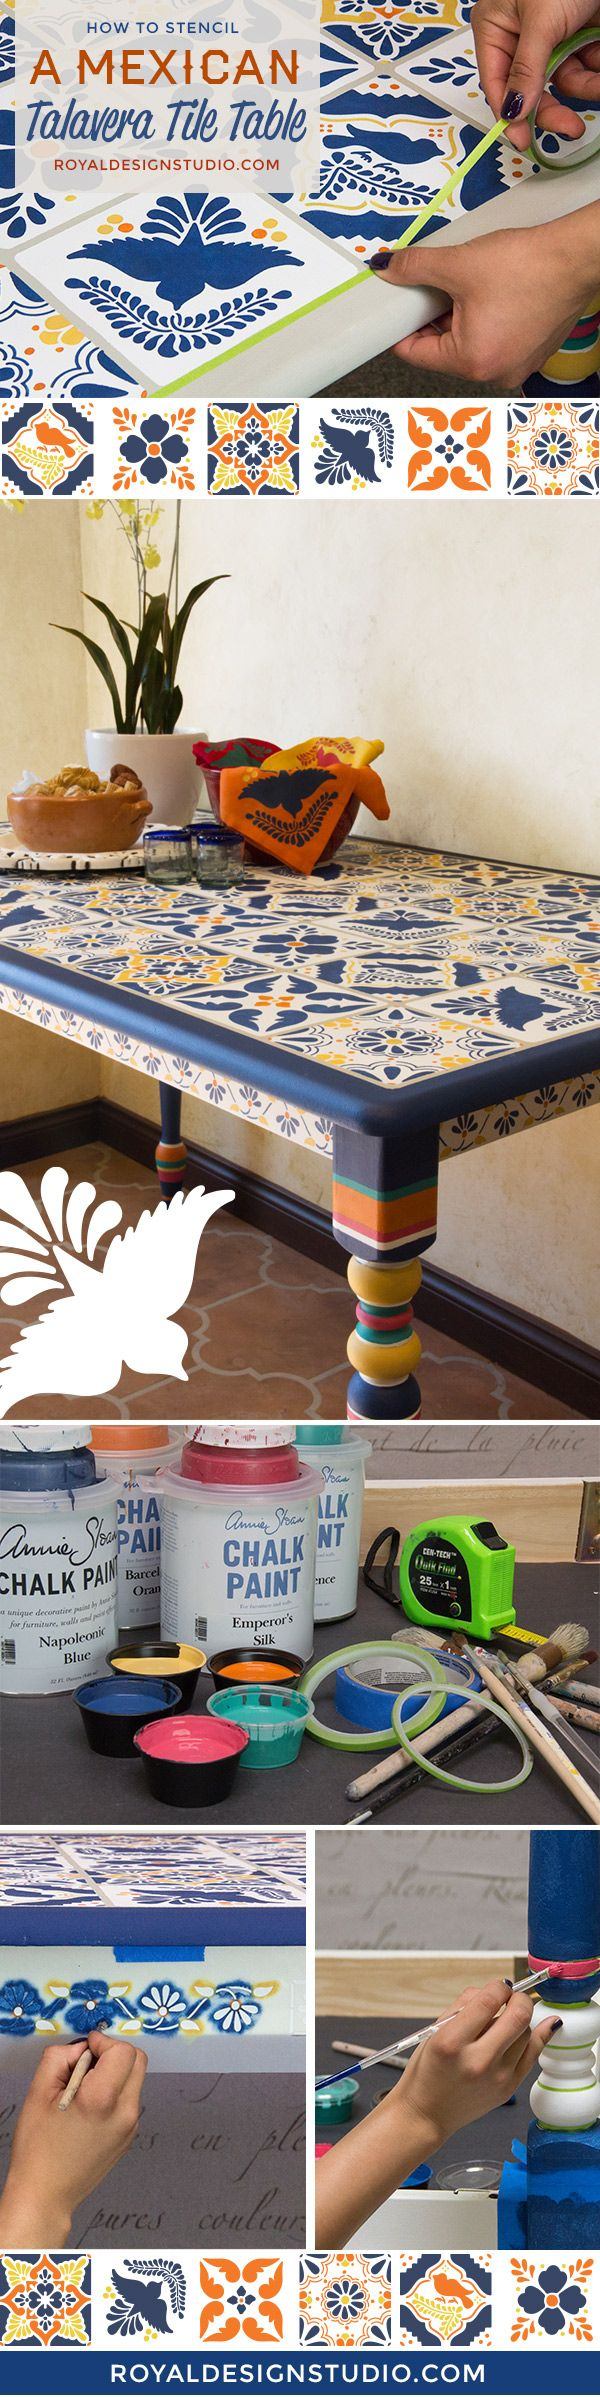 DIY Project VIDEO Tutorial: How to stencil a Mexican talavera tile table with furniture stencils and chalk paint by annie sloan